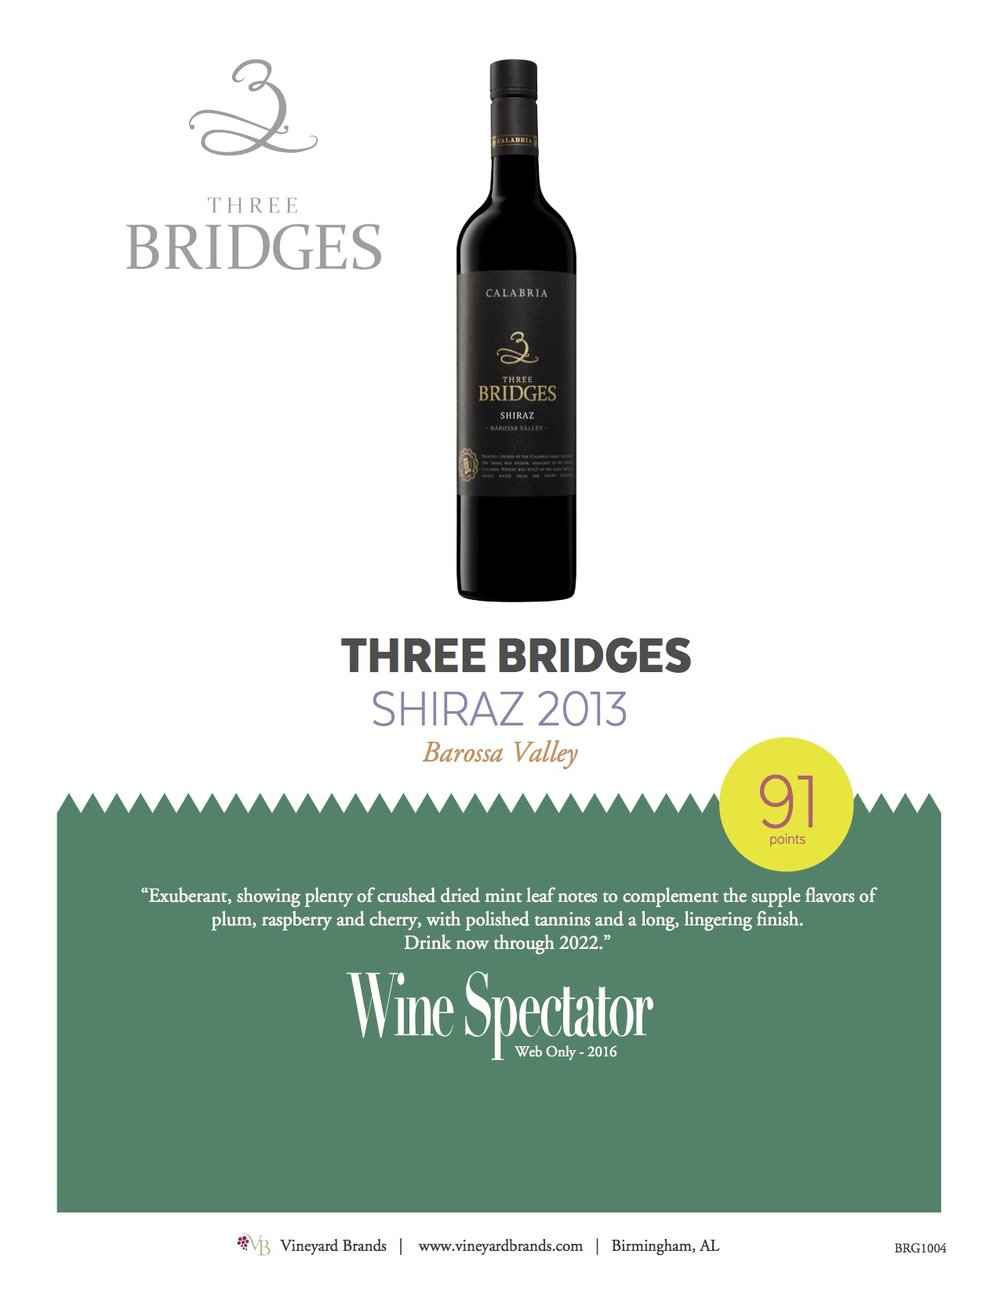 3 bridges shiraz.jpg